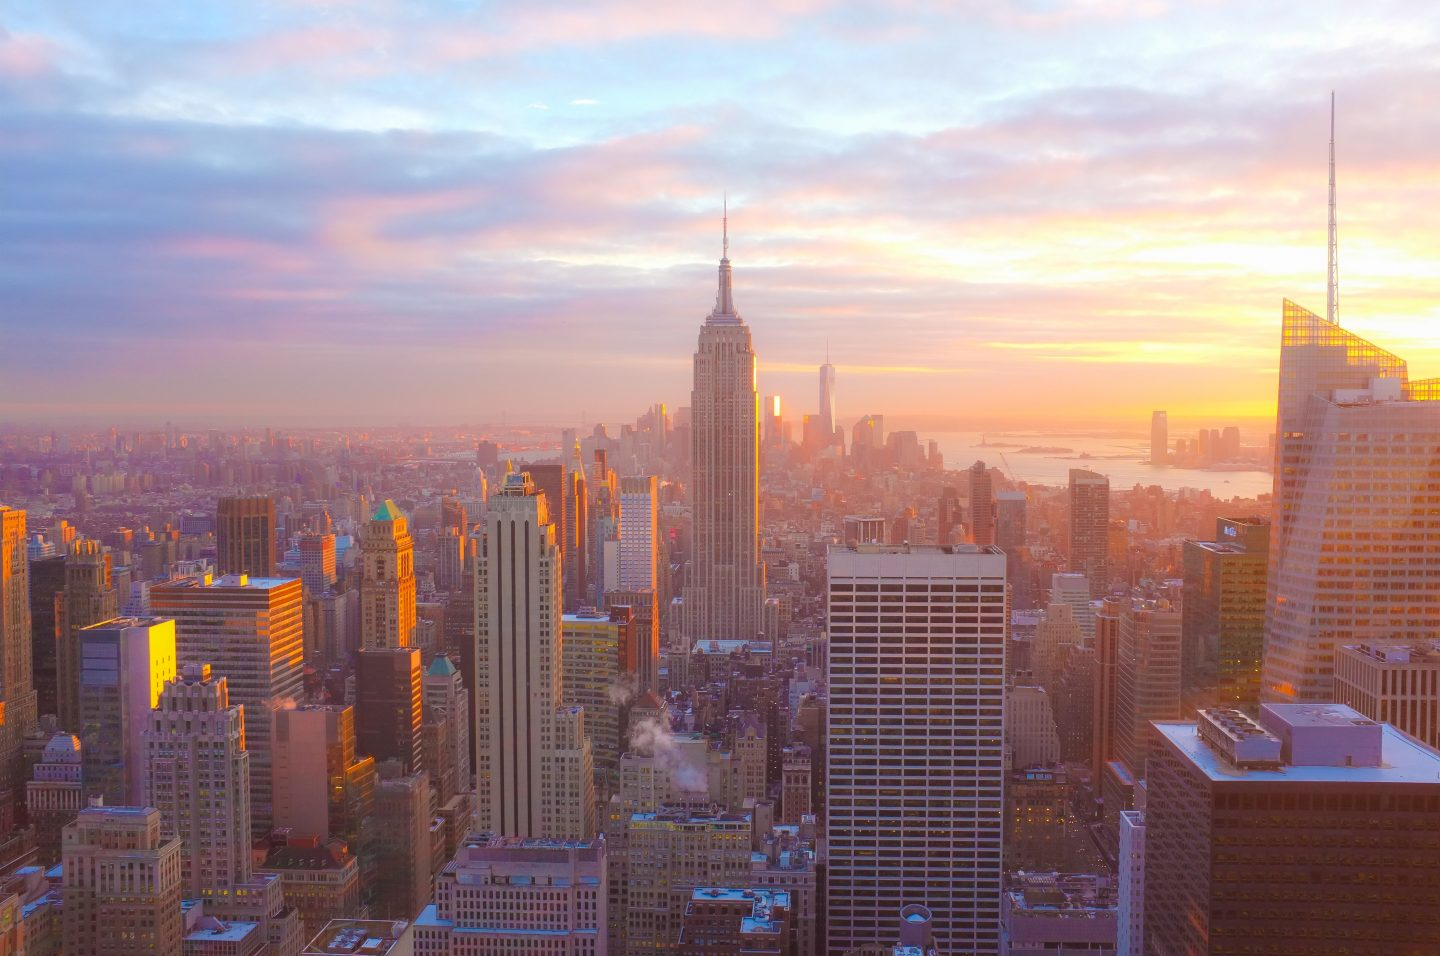 gorgeous sunset colors over new york city